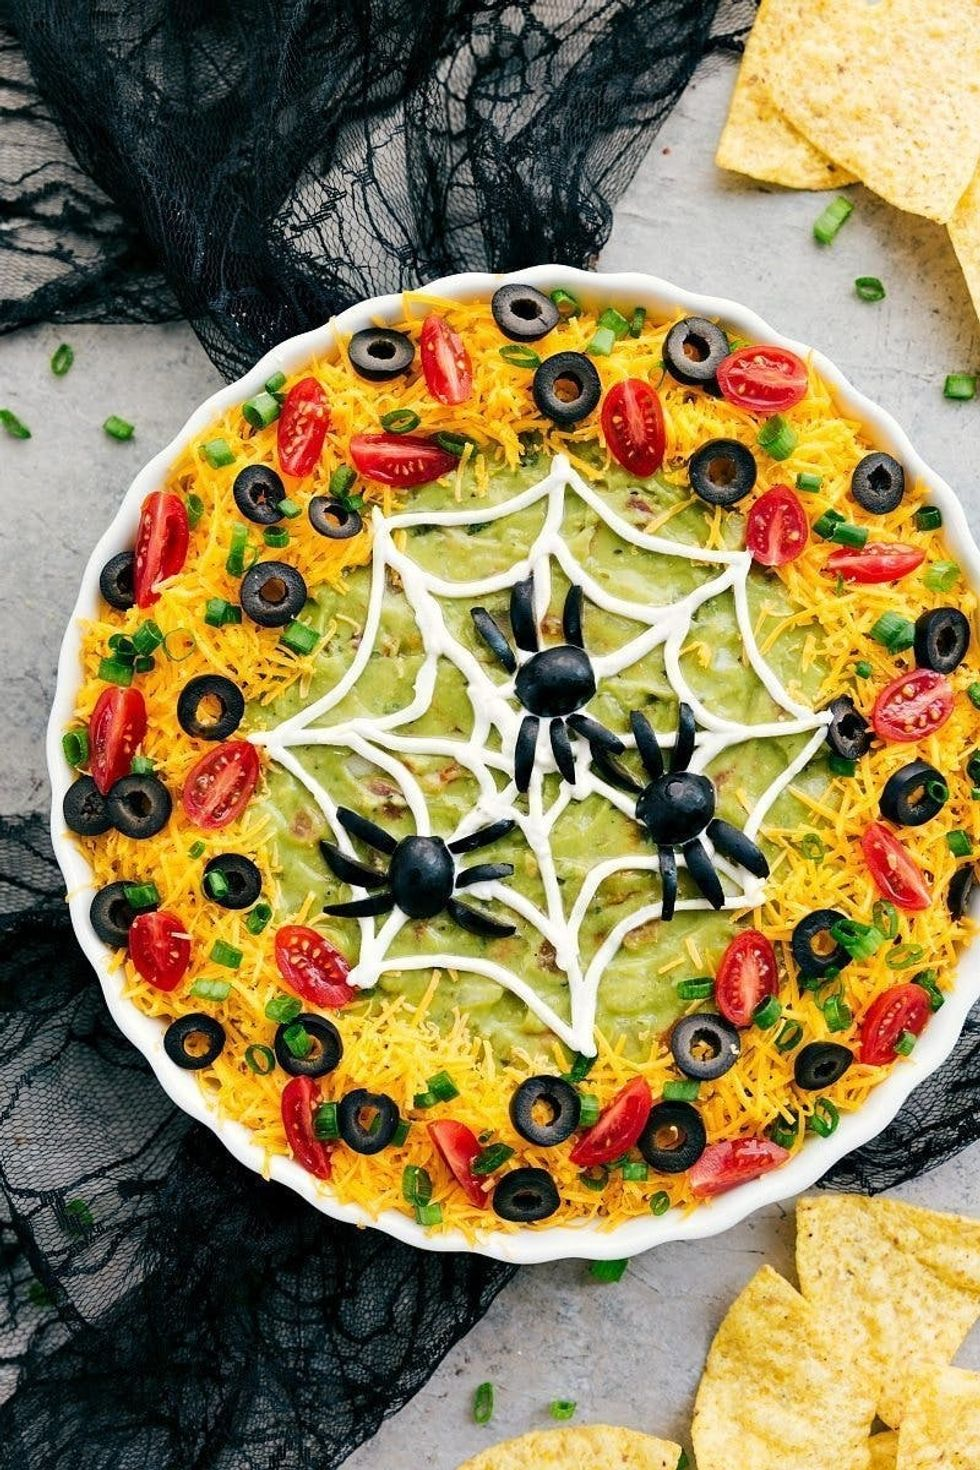 17 Easy Scary Halloween Appetizer Recipes for Your Potluck - Brit + Co